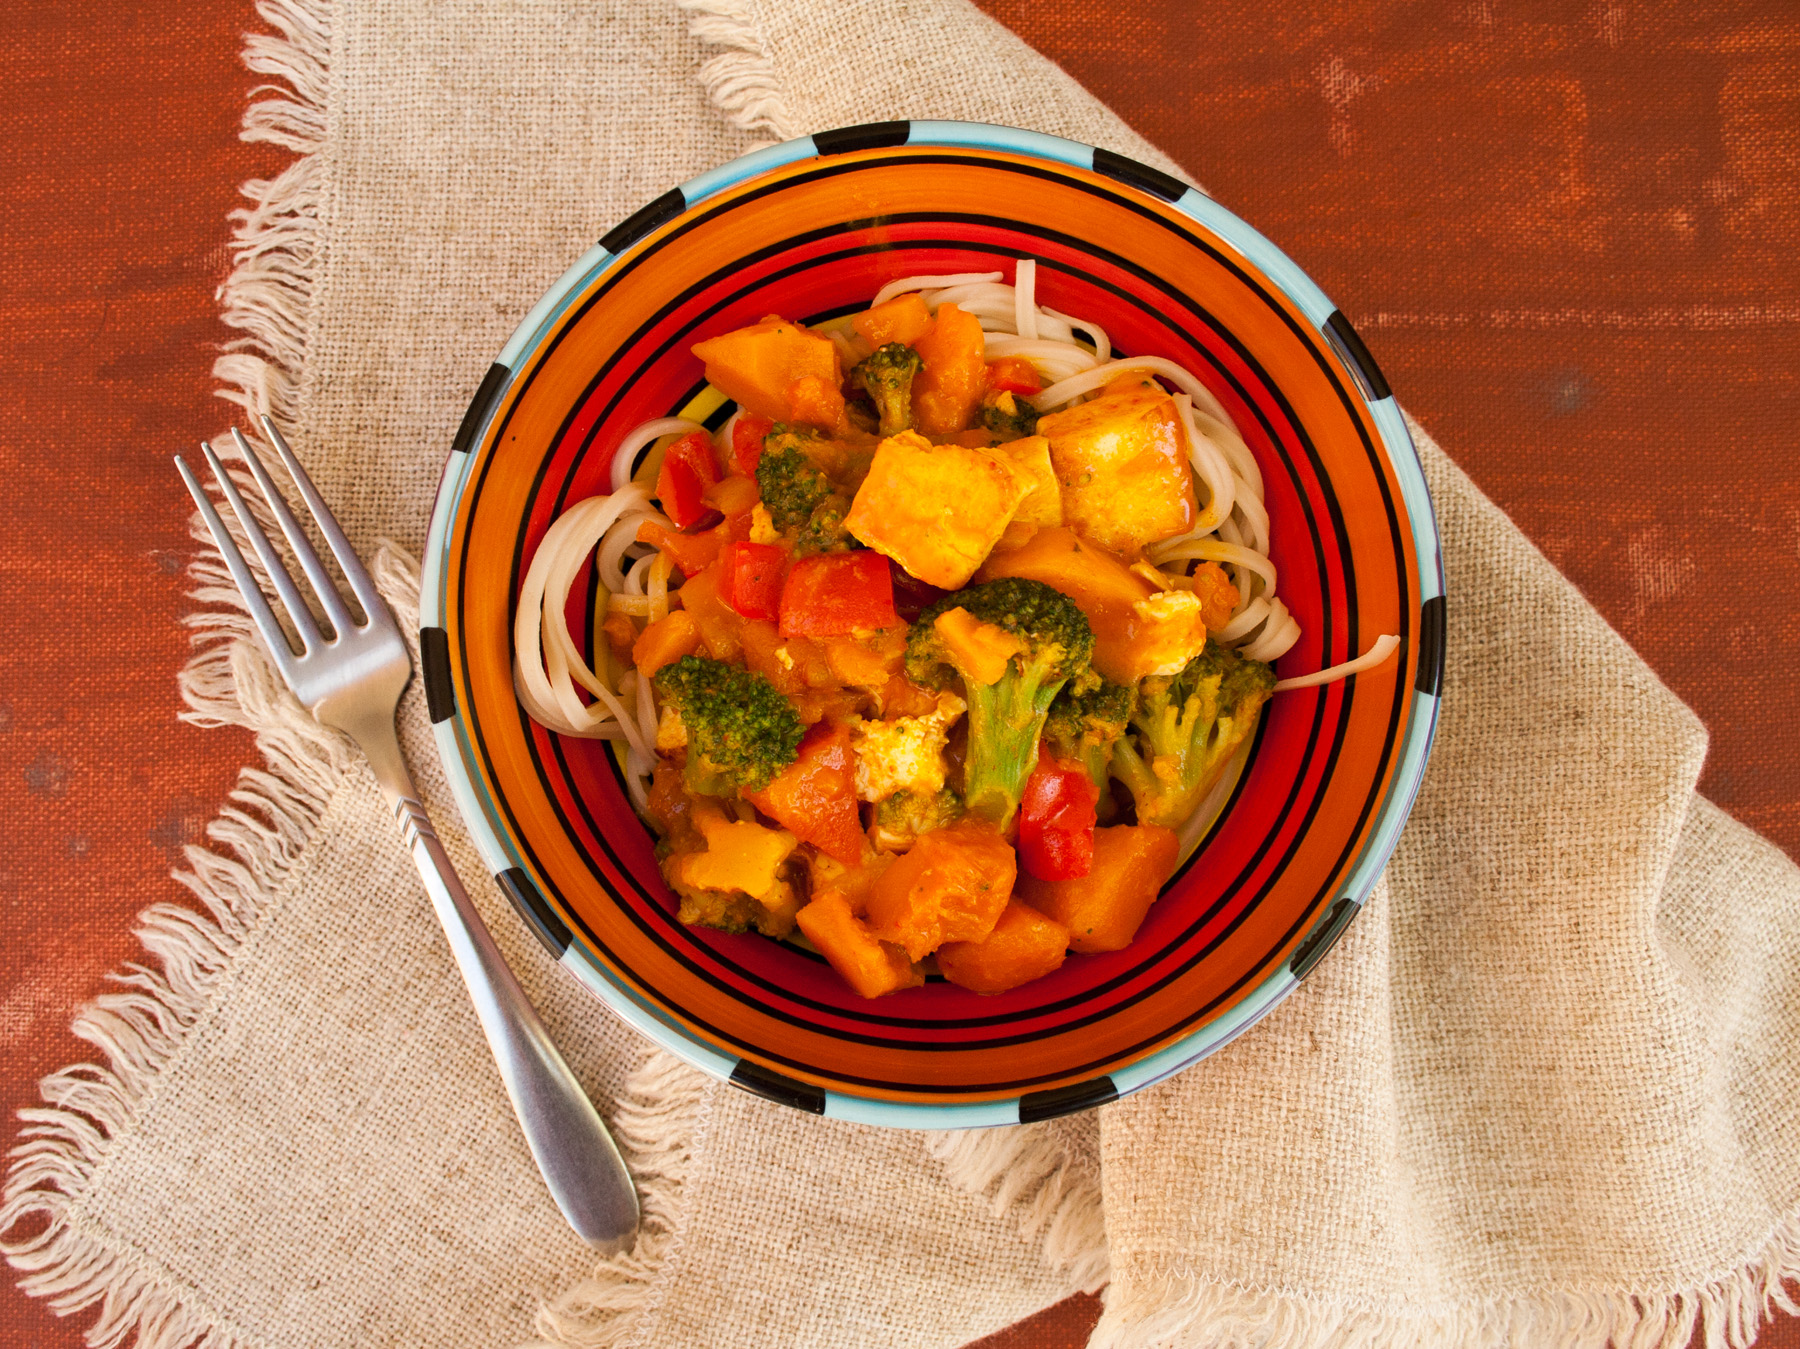 Thai Red Curry with Tofu and Kabocha Squash birds eye view.